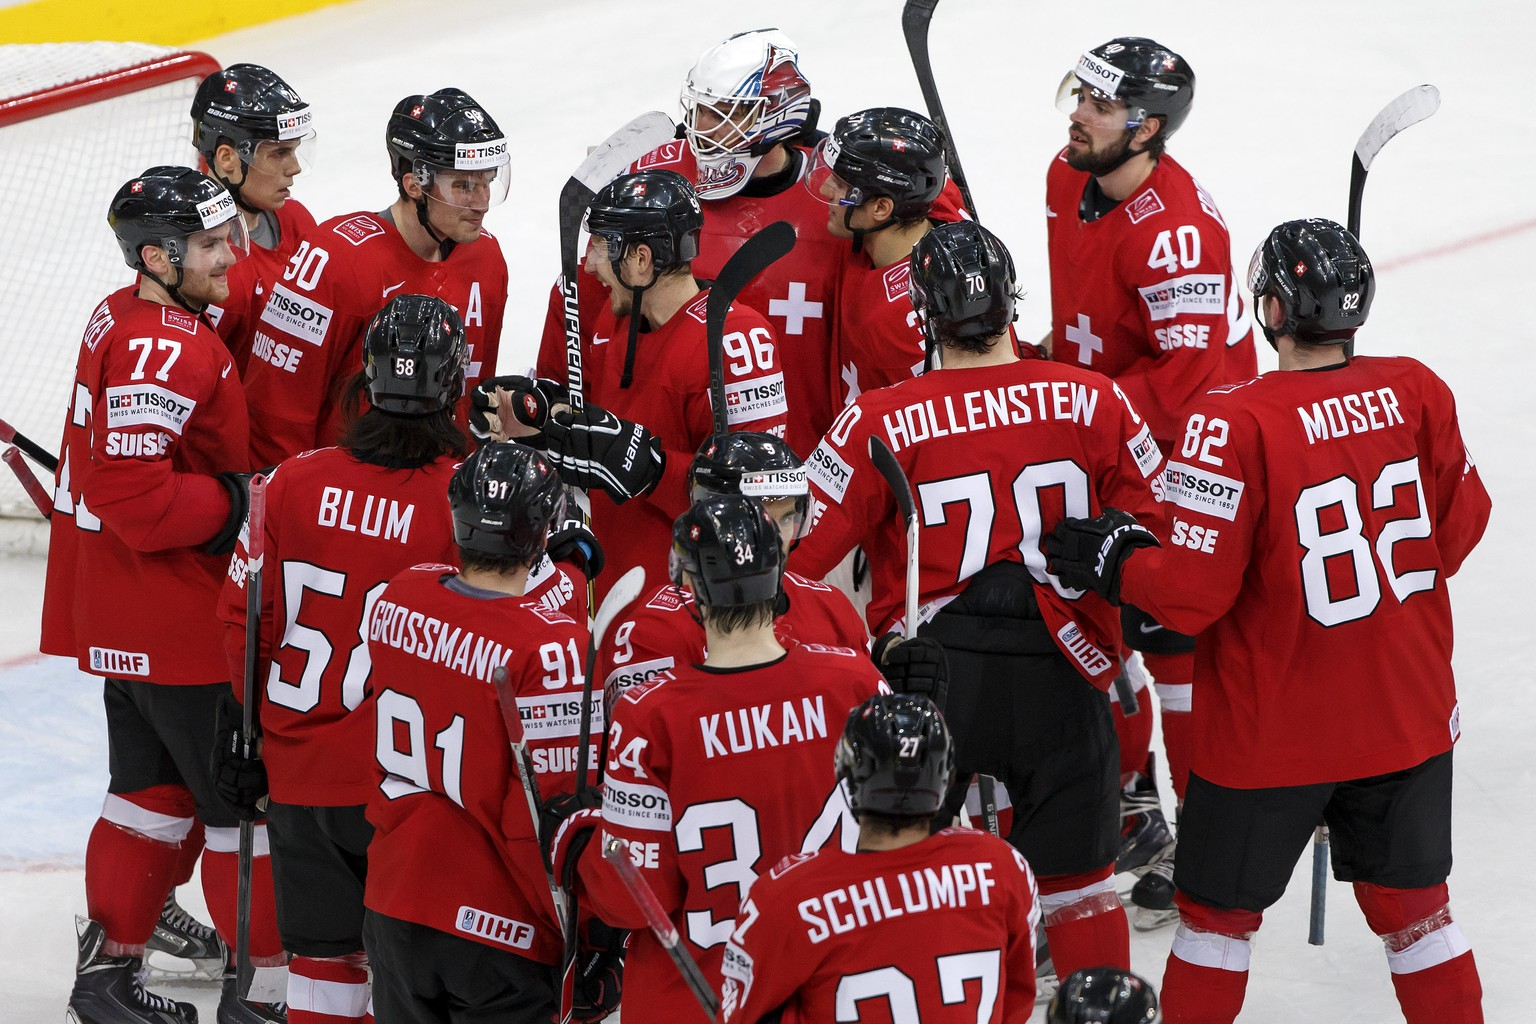 Switzerland's players celebrate their victory after beating Kazakhstan, during the 2014 IIHF Ice Hockey World Championships preliminary round game Switzerland vs Kazakhstan, at the Minsk Arena, in Minsk, Belarus, Saturday, May 17, 2014. (KEYSTONE/Salvatore Di Nolfi)